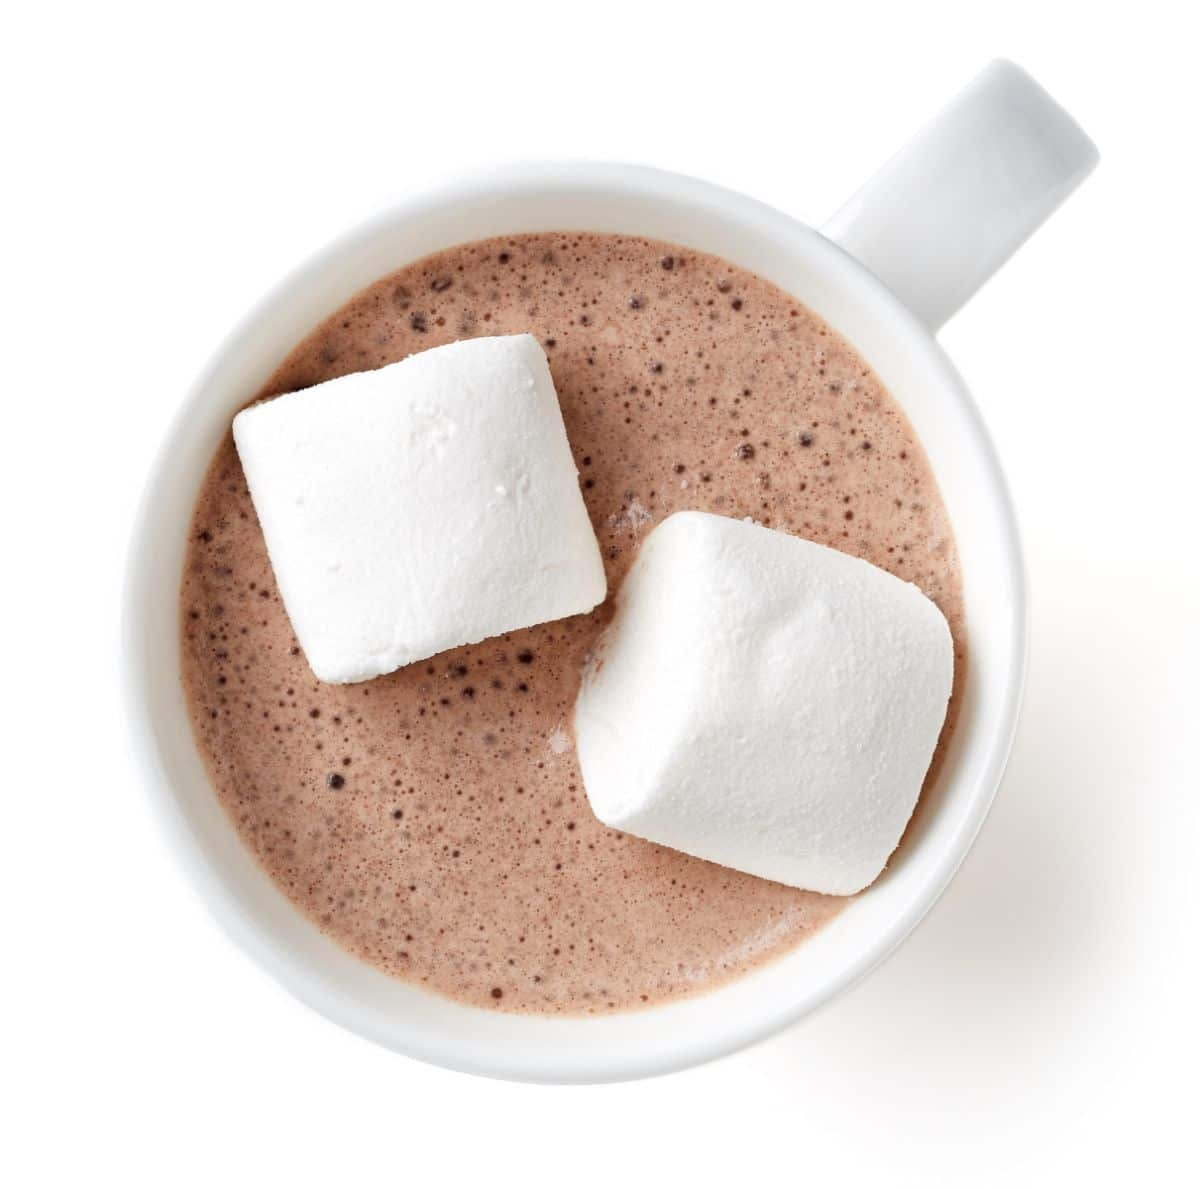 on a white background is an aerial view of a white mug filled with hot chocolate and topped with 2 marshmallows